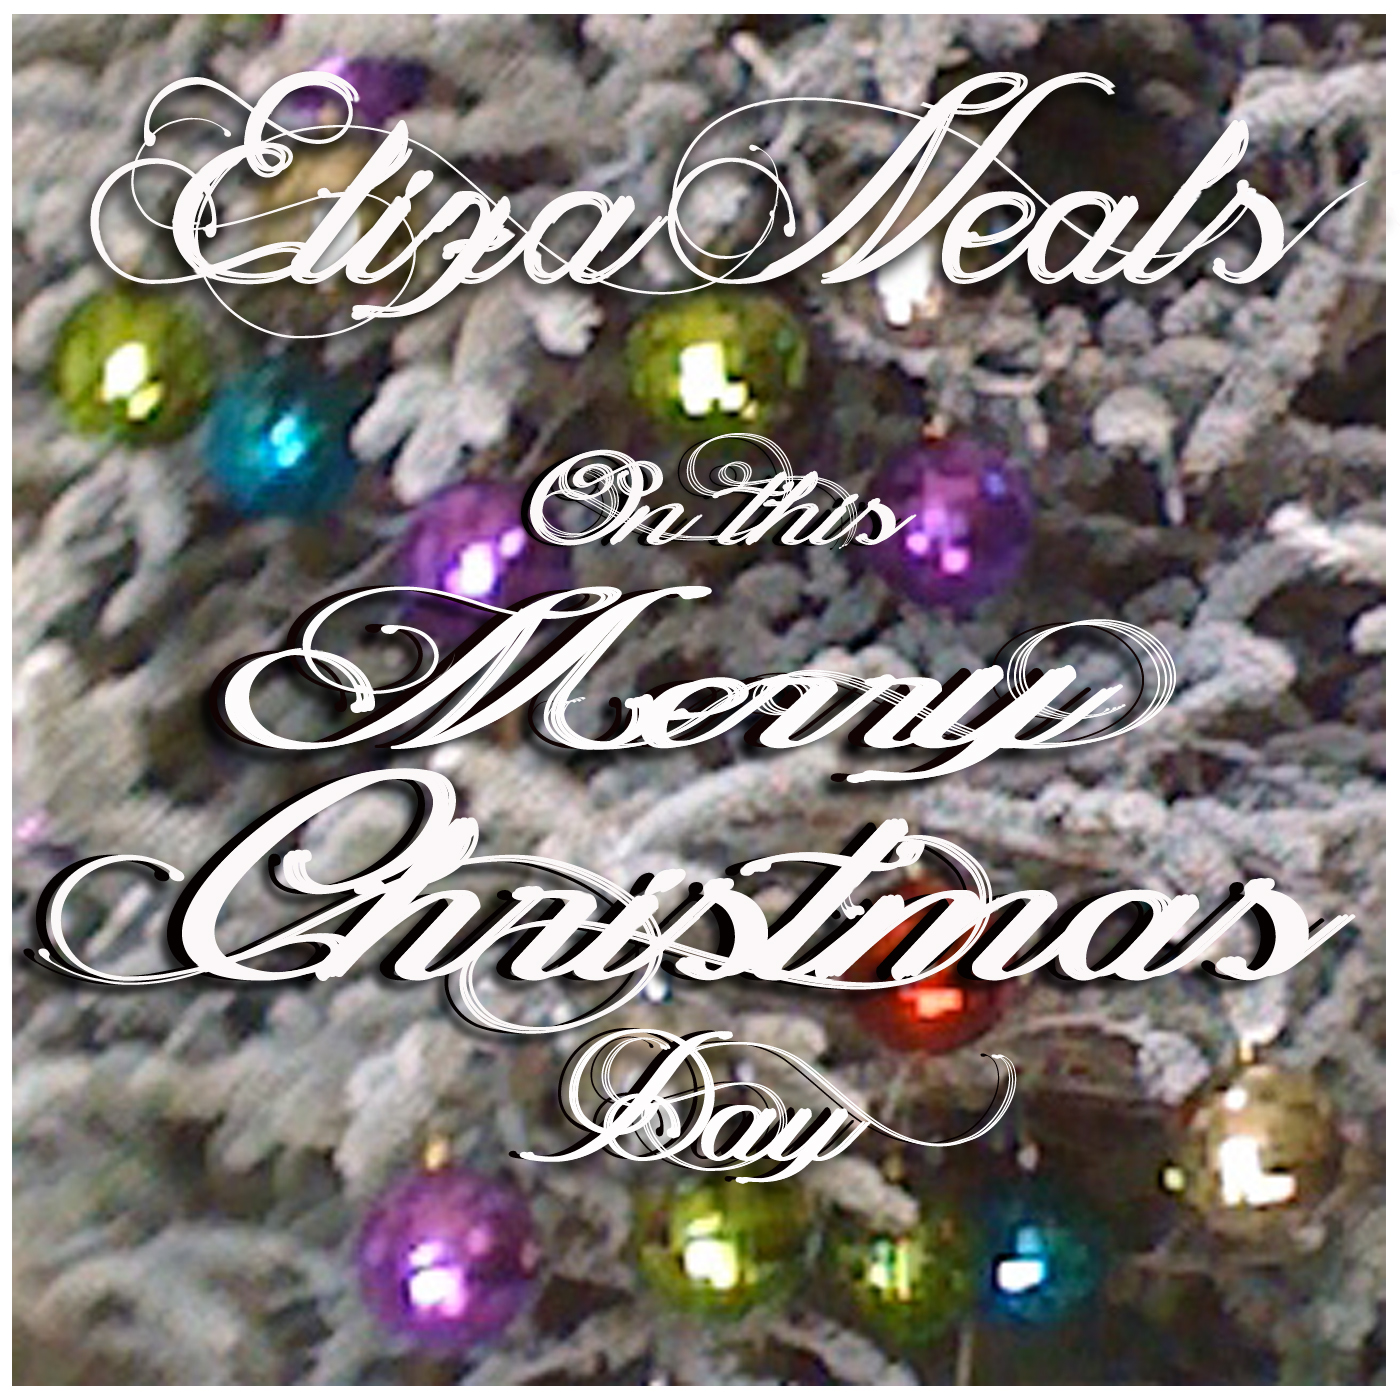 ELIZA NEALS – On this merry christmasday